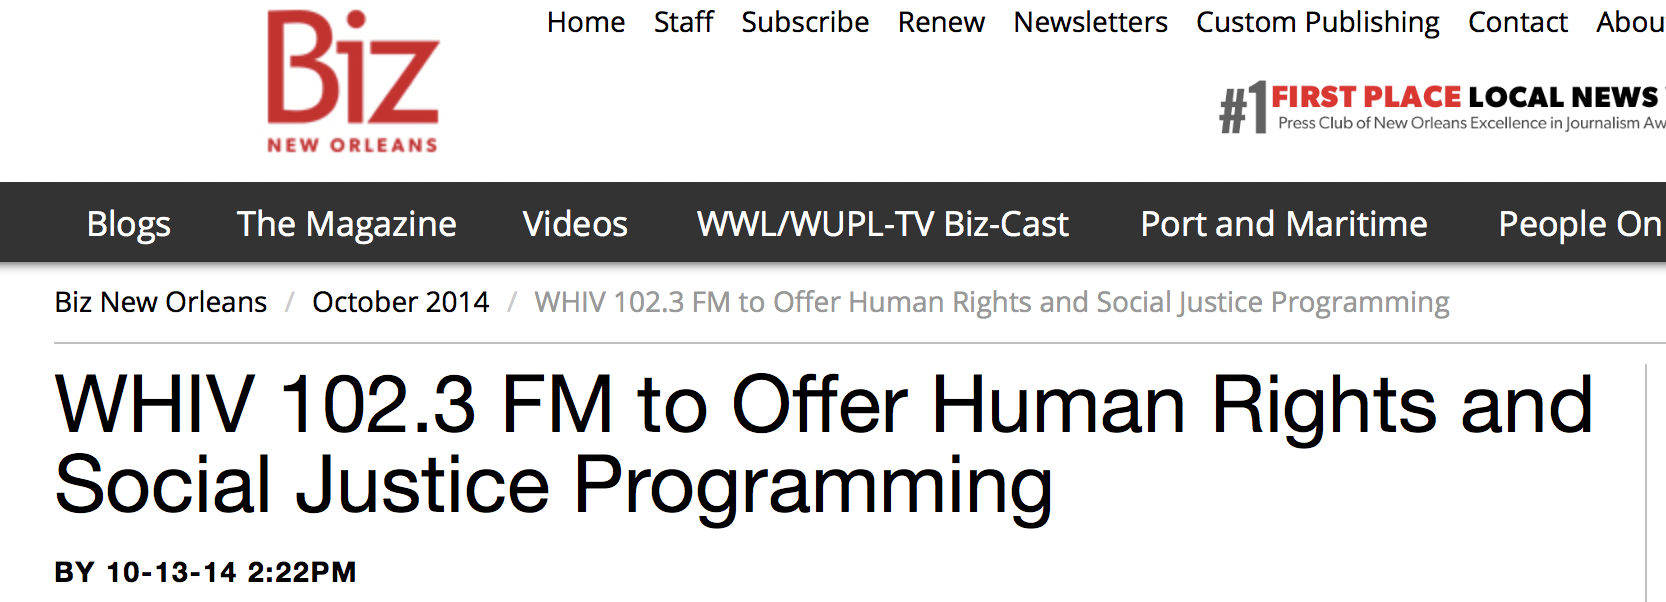 Human Rights and Social Justice Programming - A new New Orleans radio station is scheduled to hit the airways by World AIDS Day on Dec. 1, 2014.WHIV 102.3 FM, will offer programming dedicated to human rights and social justice.Full Article HERE